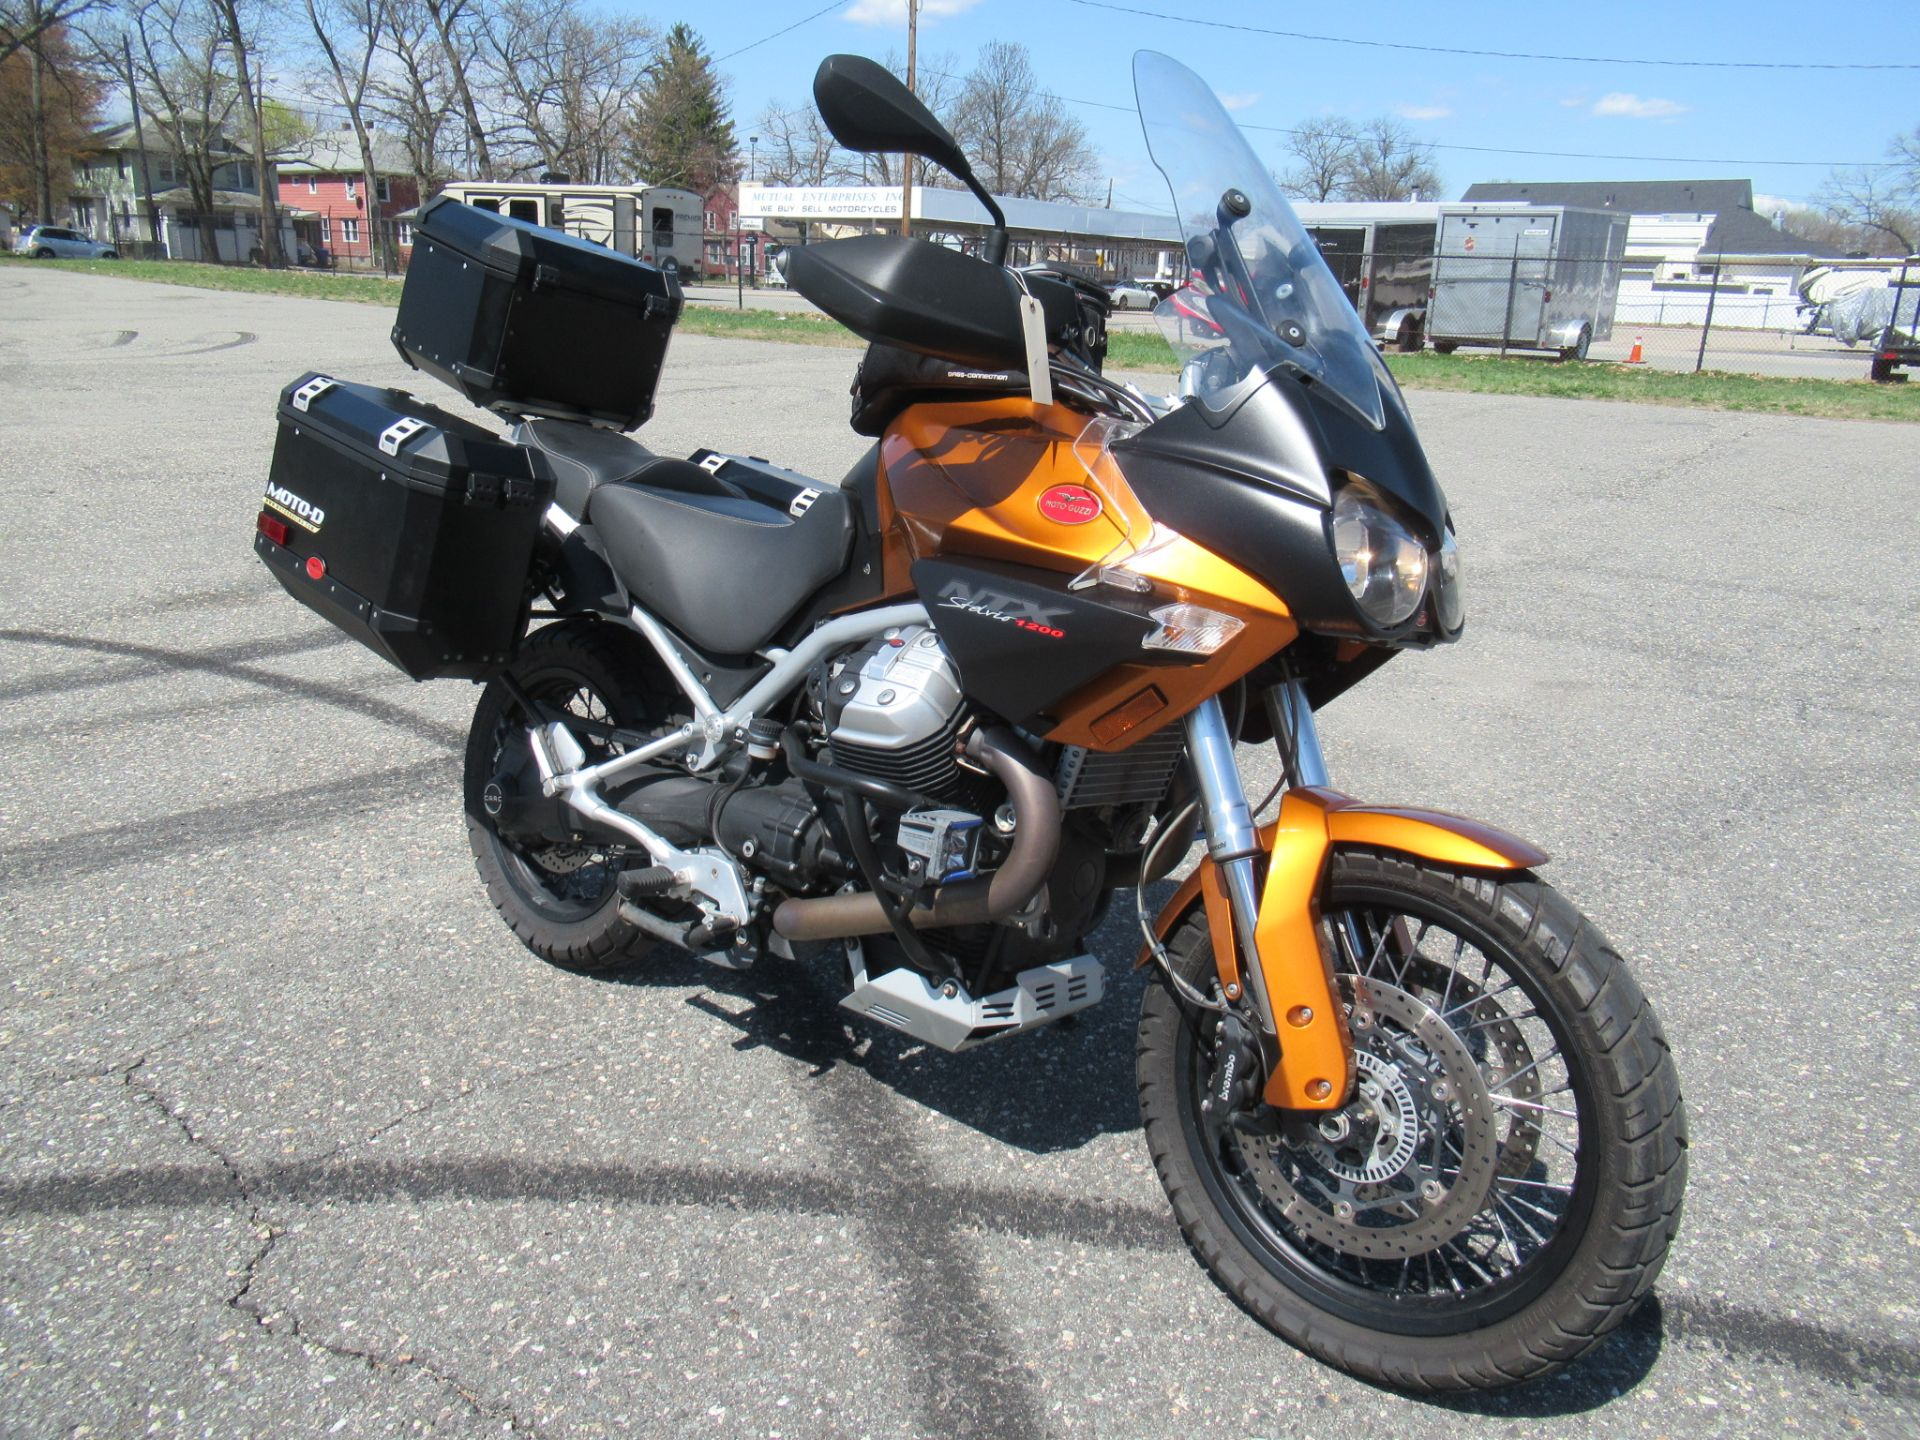 2013 Moto Guzzi Stelvio 1200 NTX ABS in Springfield, Massachusetts - Photo 2